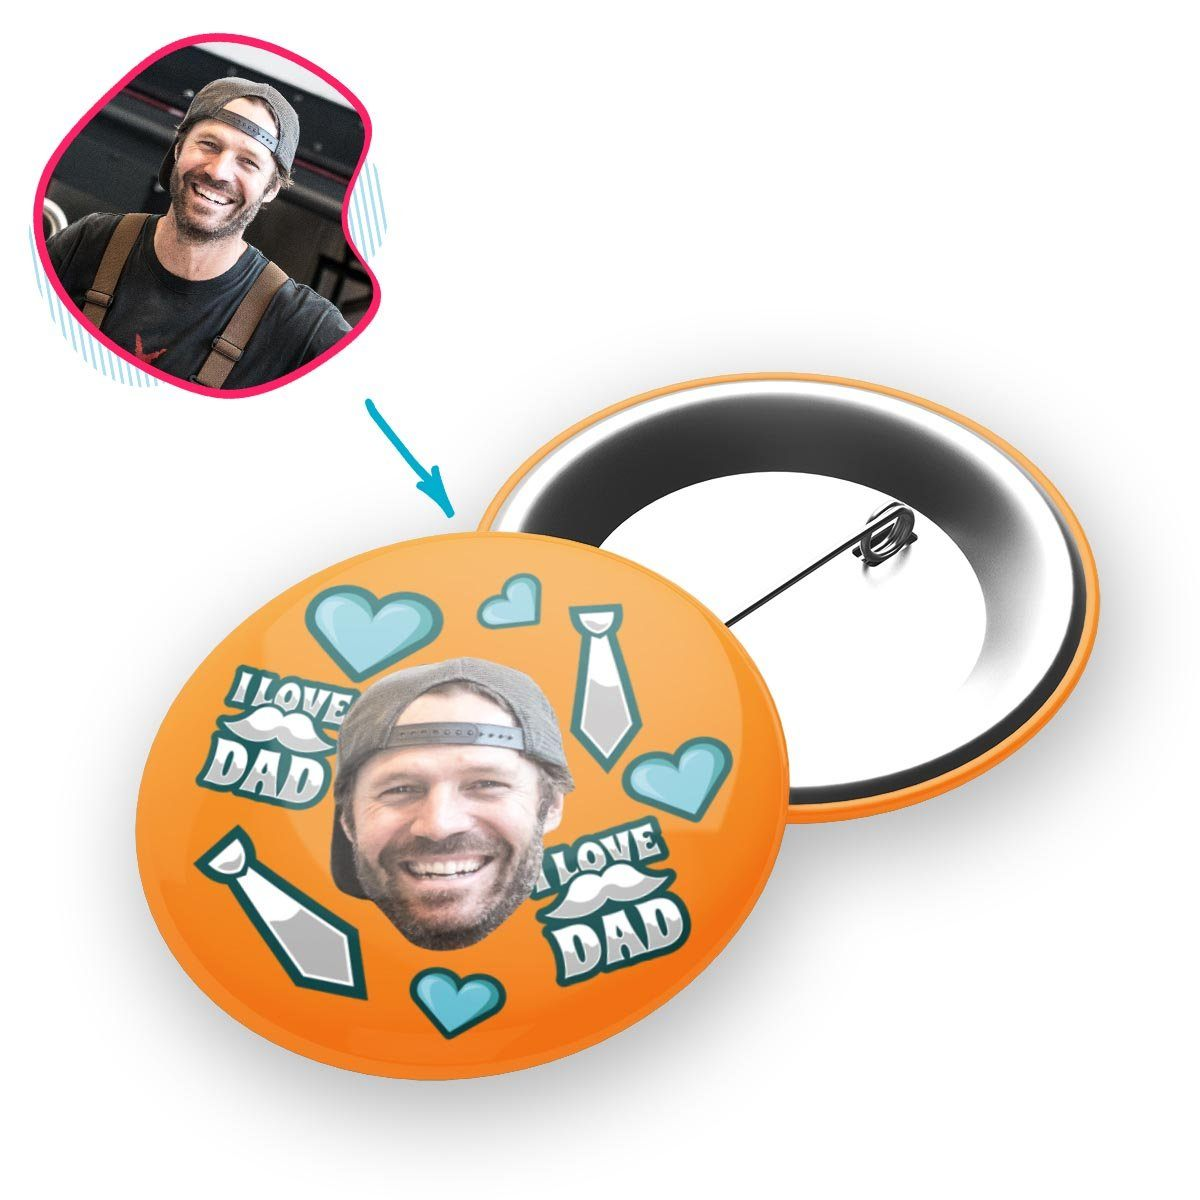 orange Love Dad pin personalized with photo of face printed on it